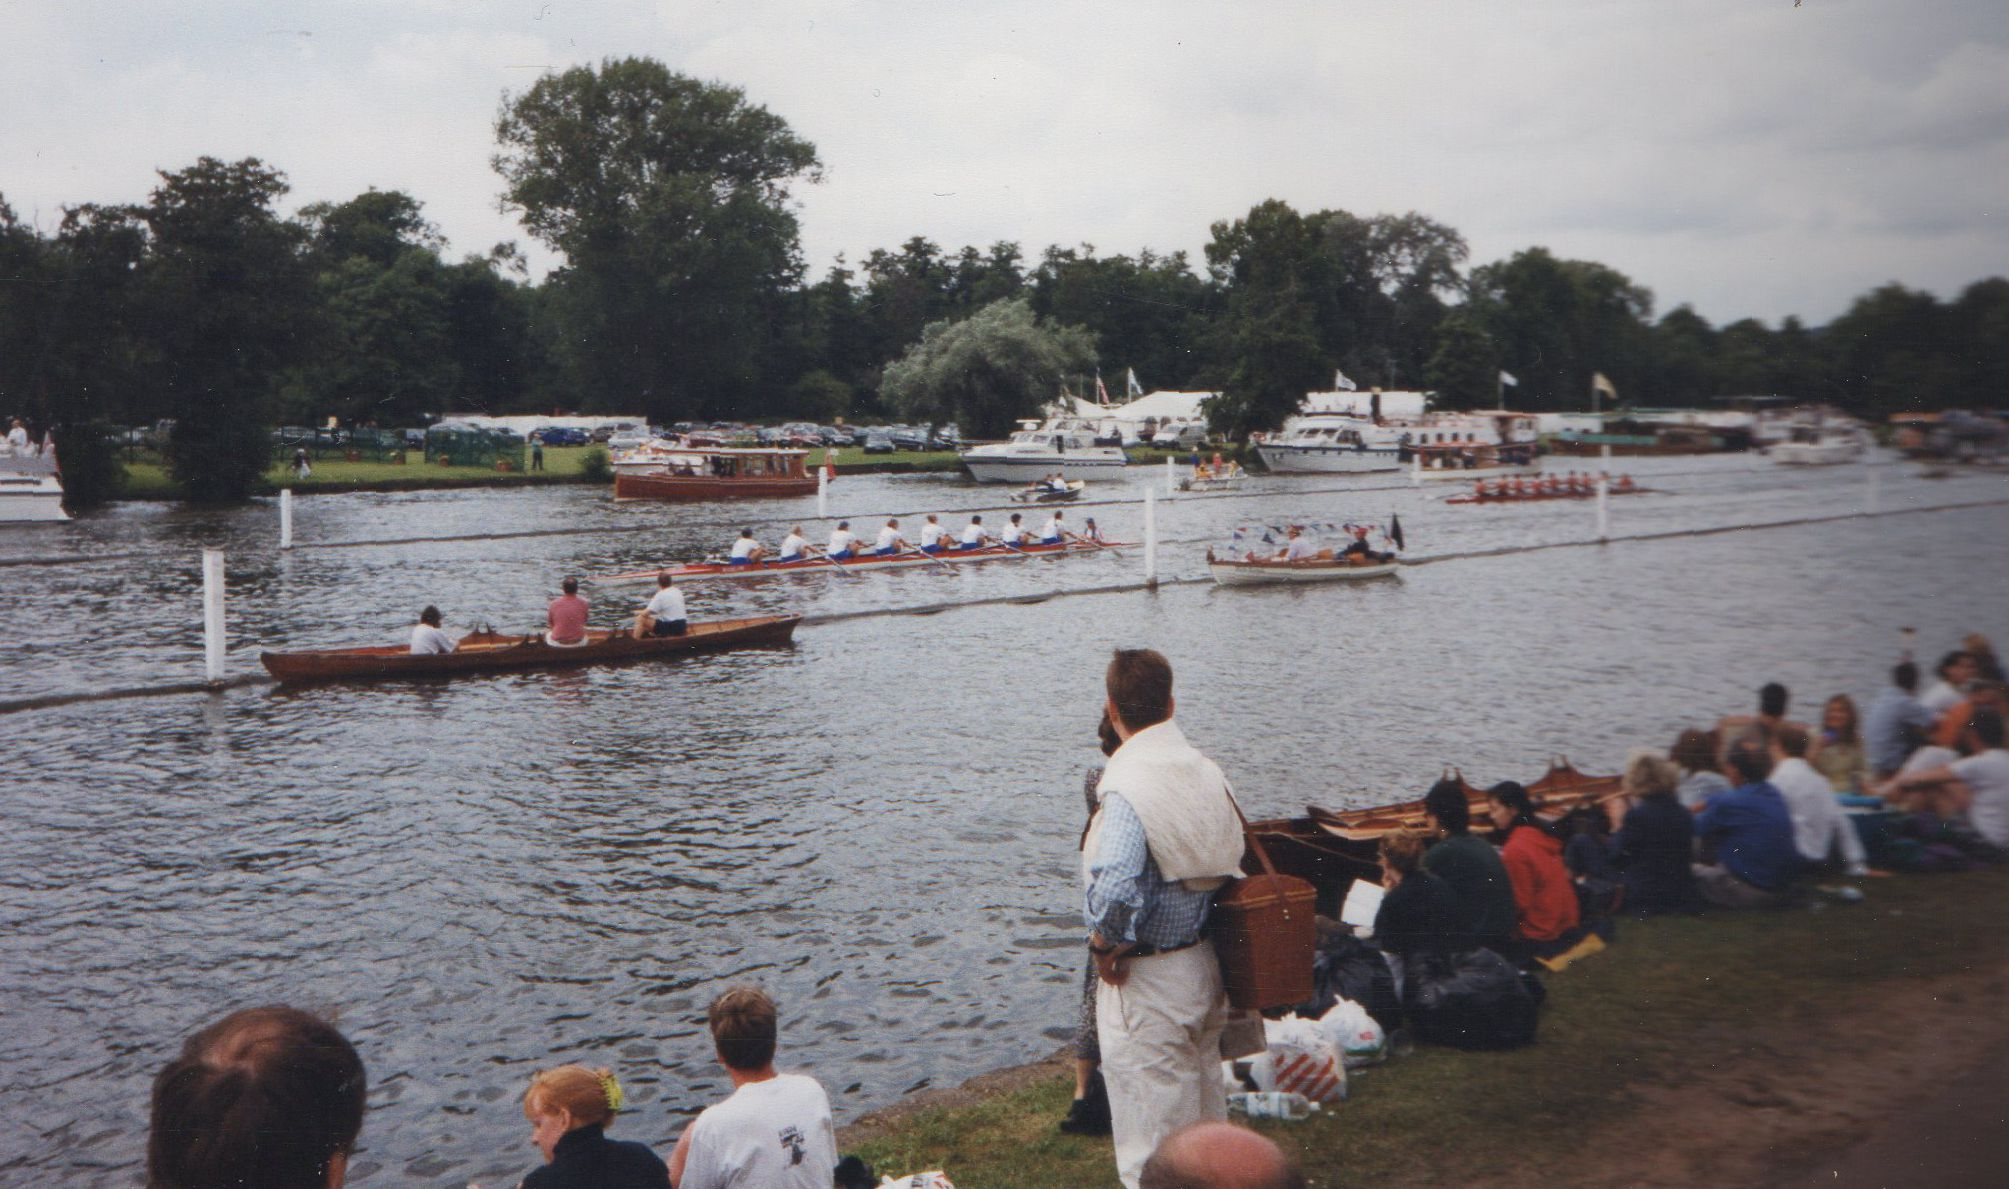 Women's eights racing at Henley with a lot of clear water between them